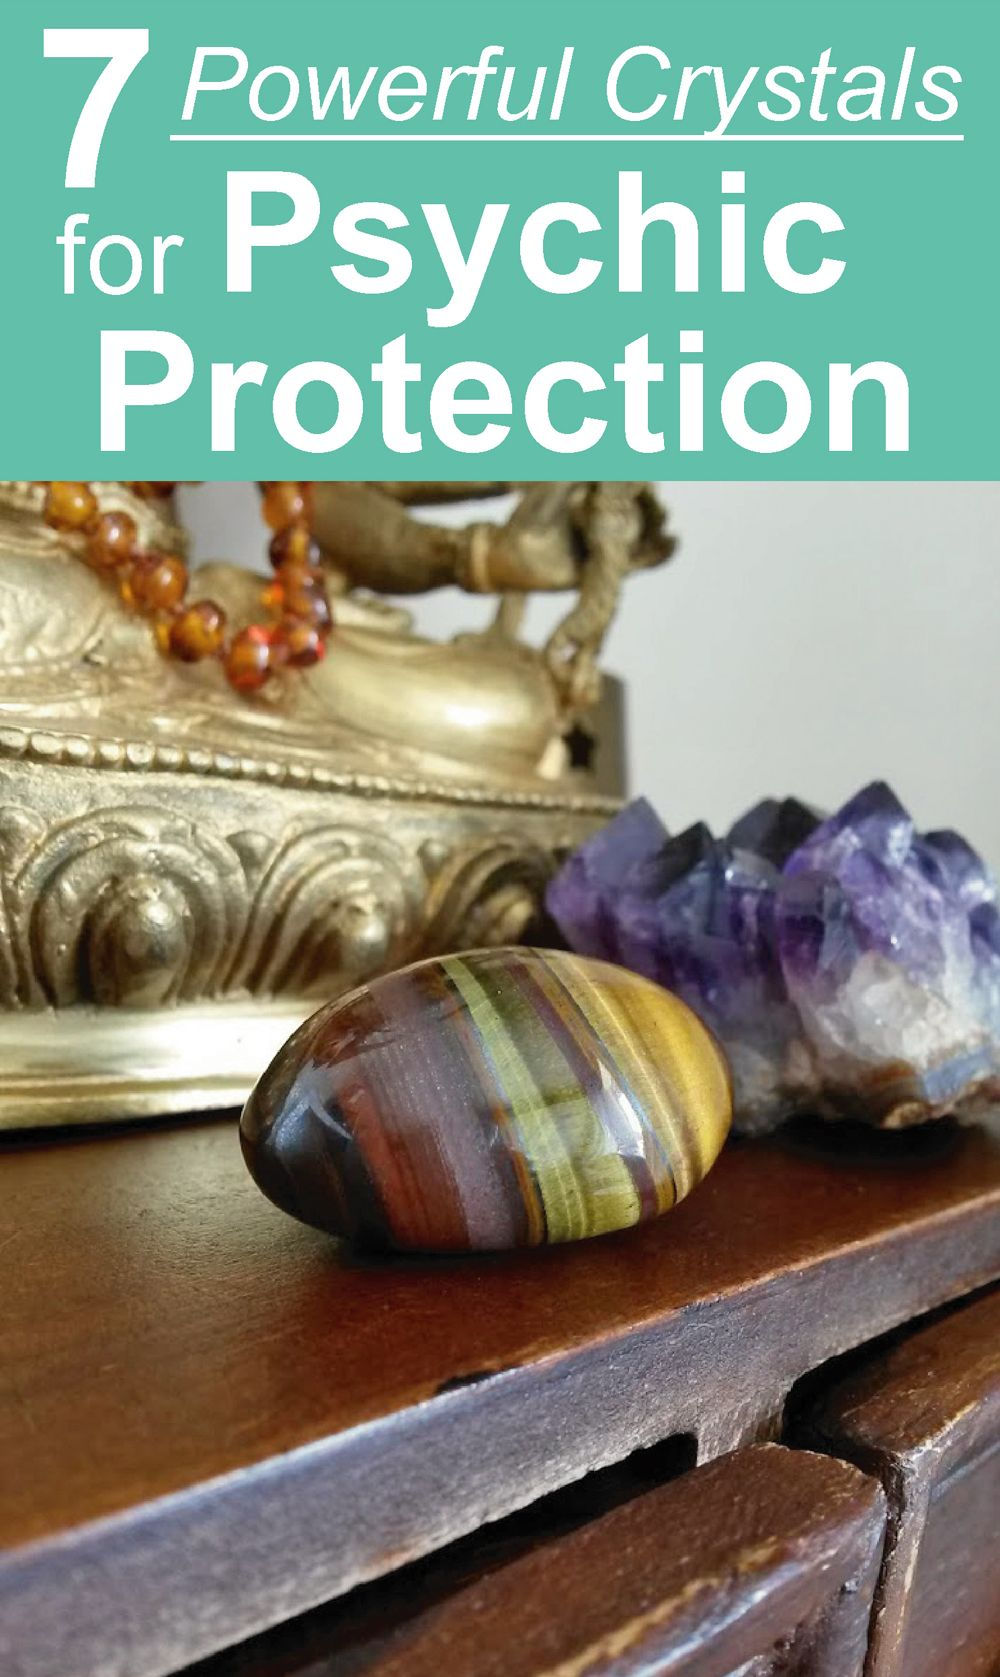 crystals for psychic selfprotection